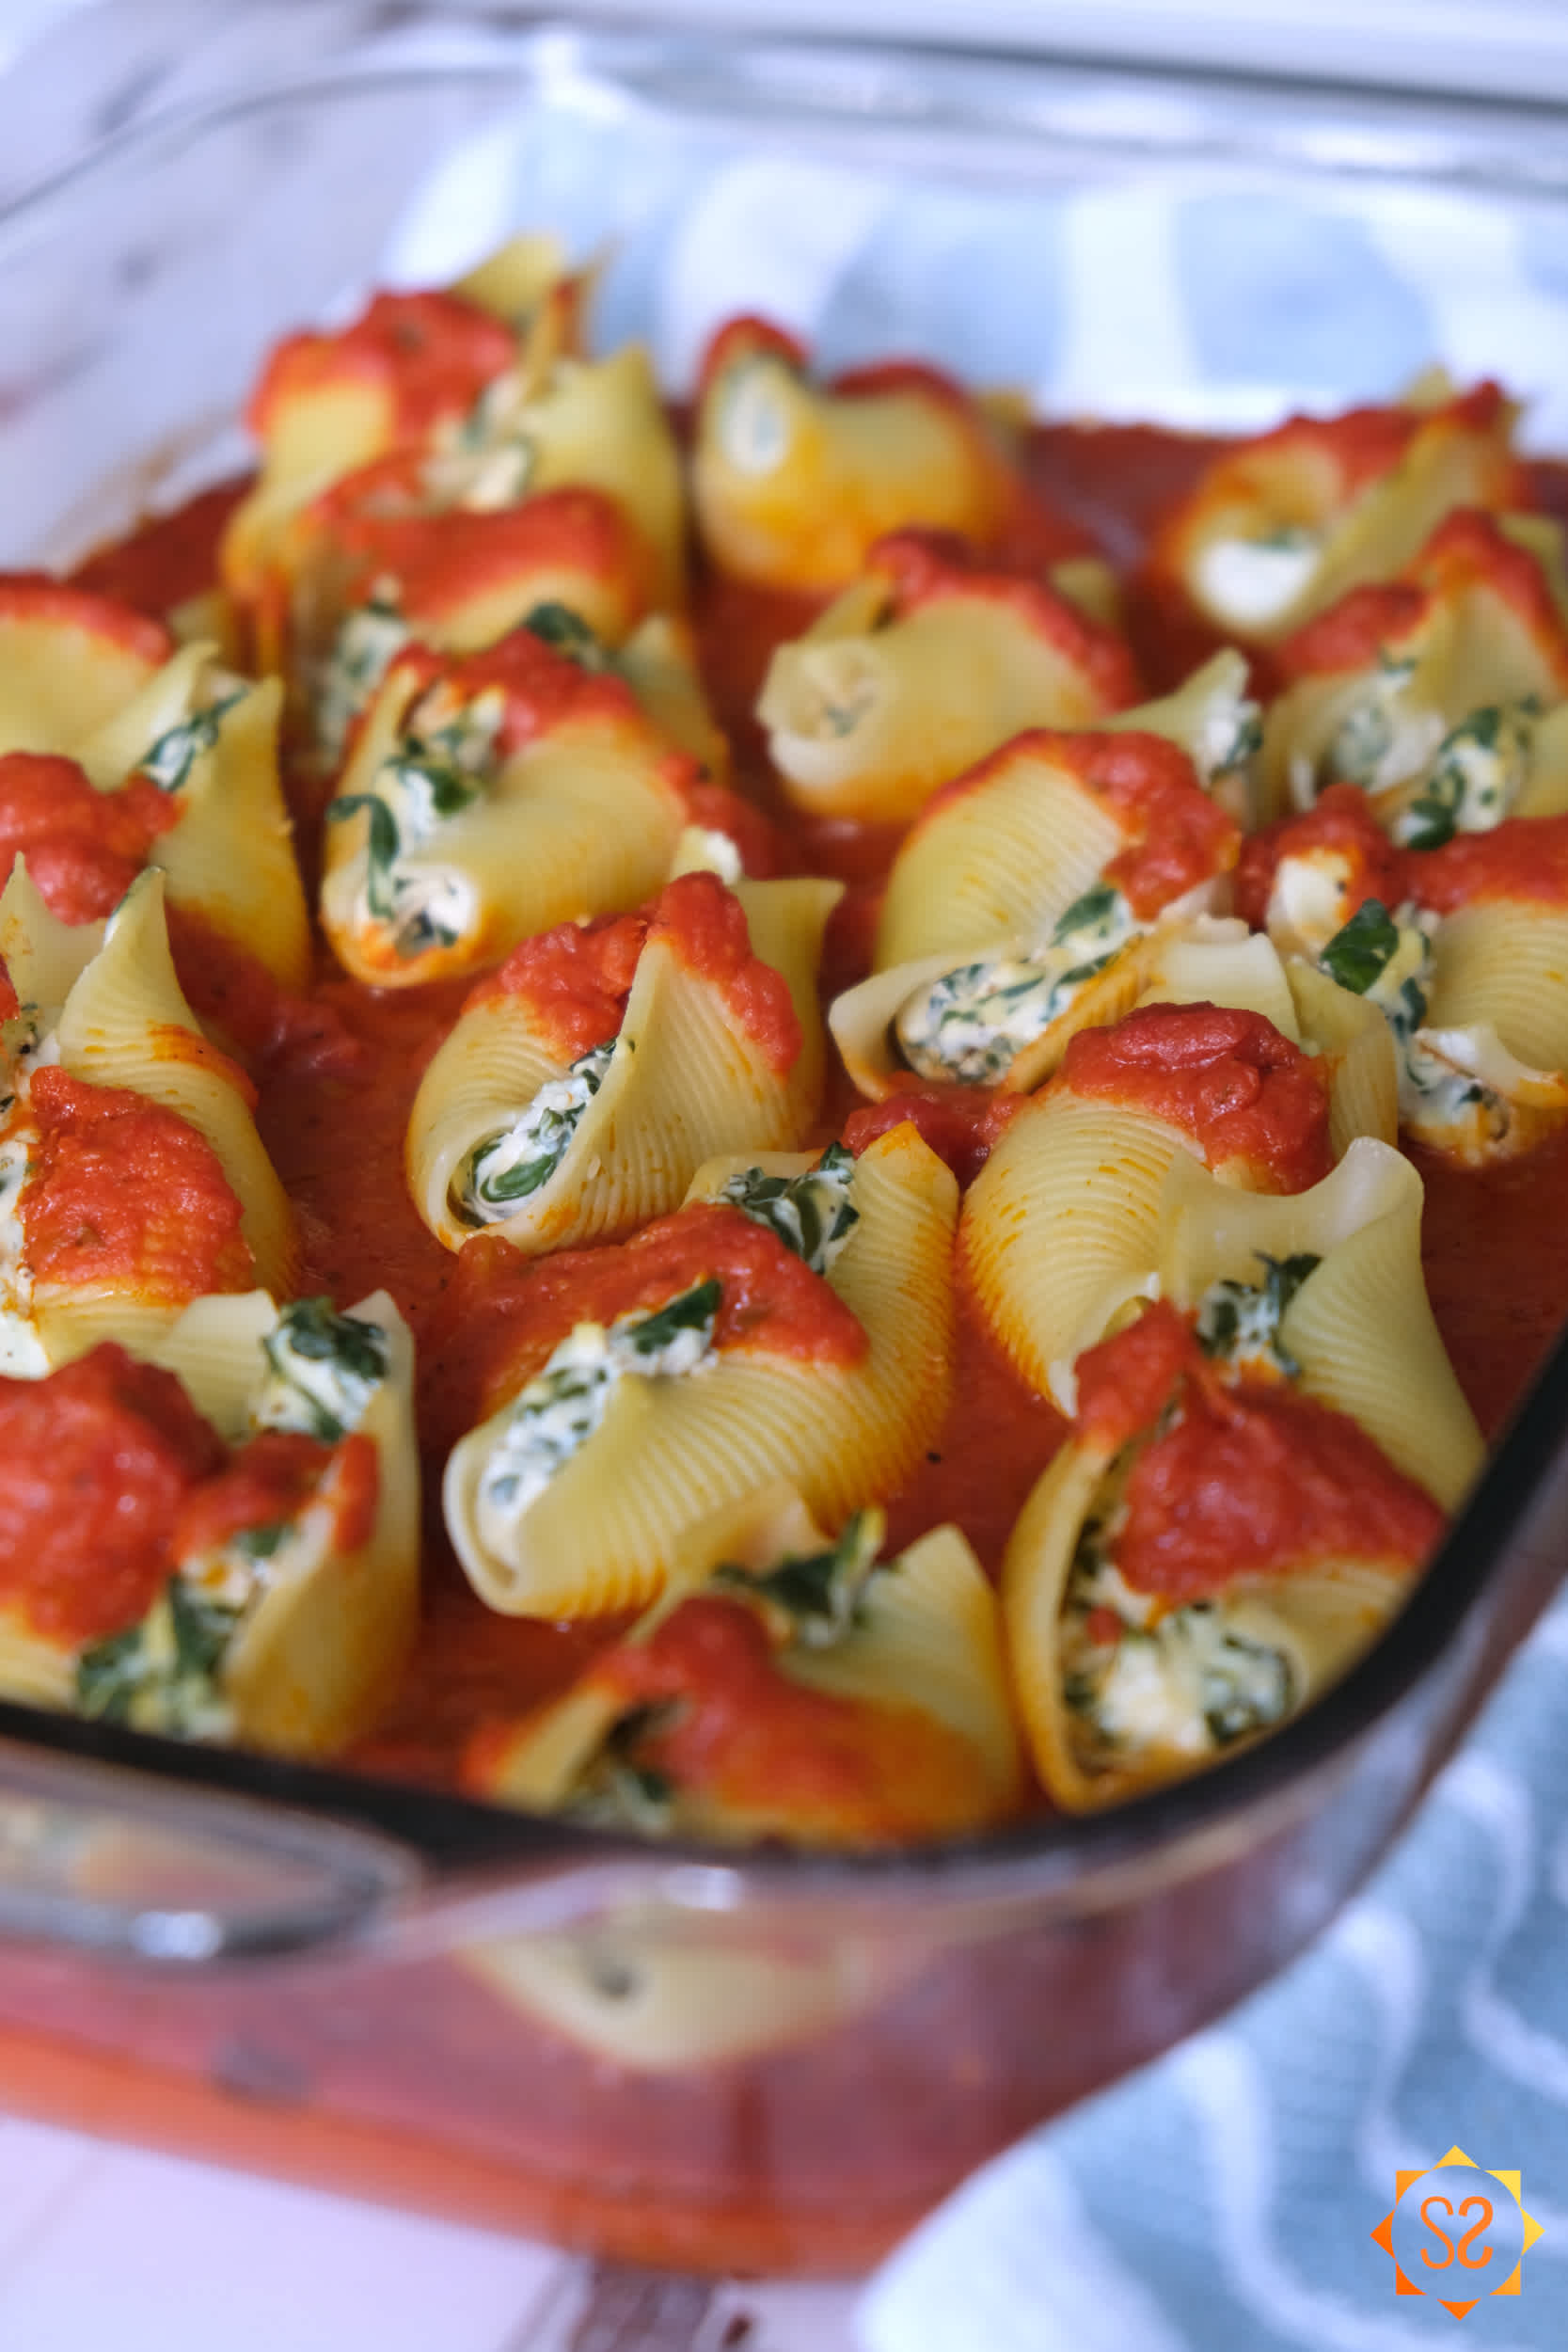 Stuffed shells in a casserole dish